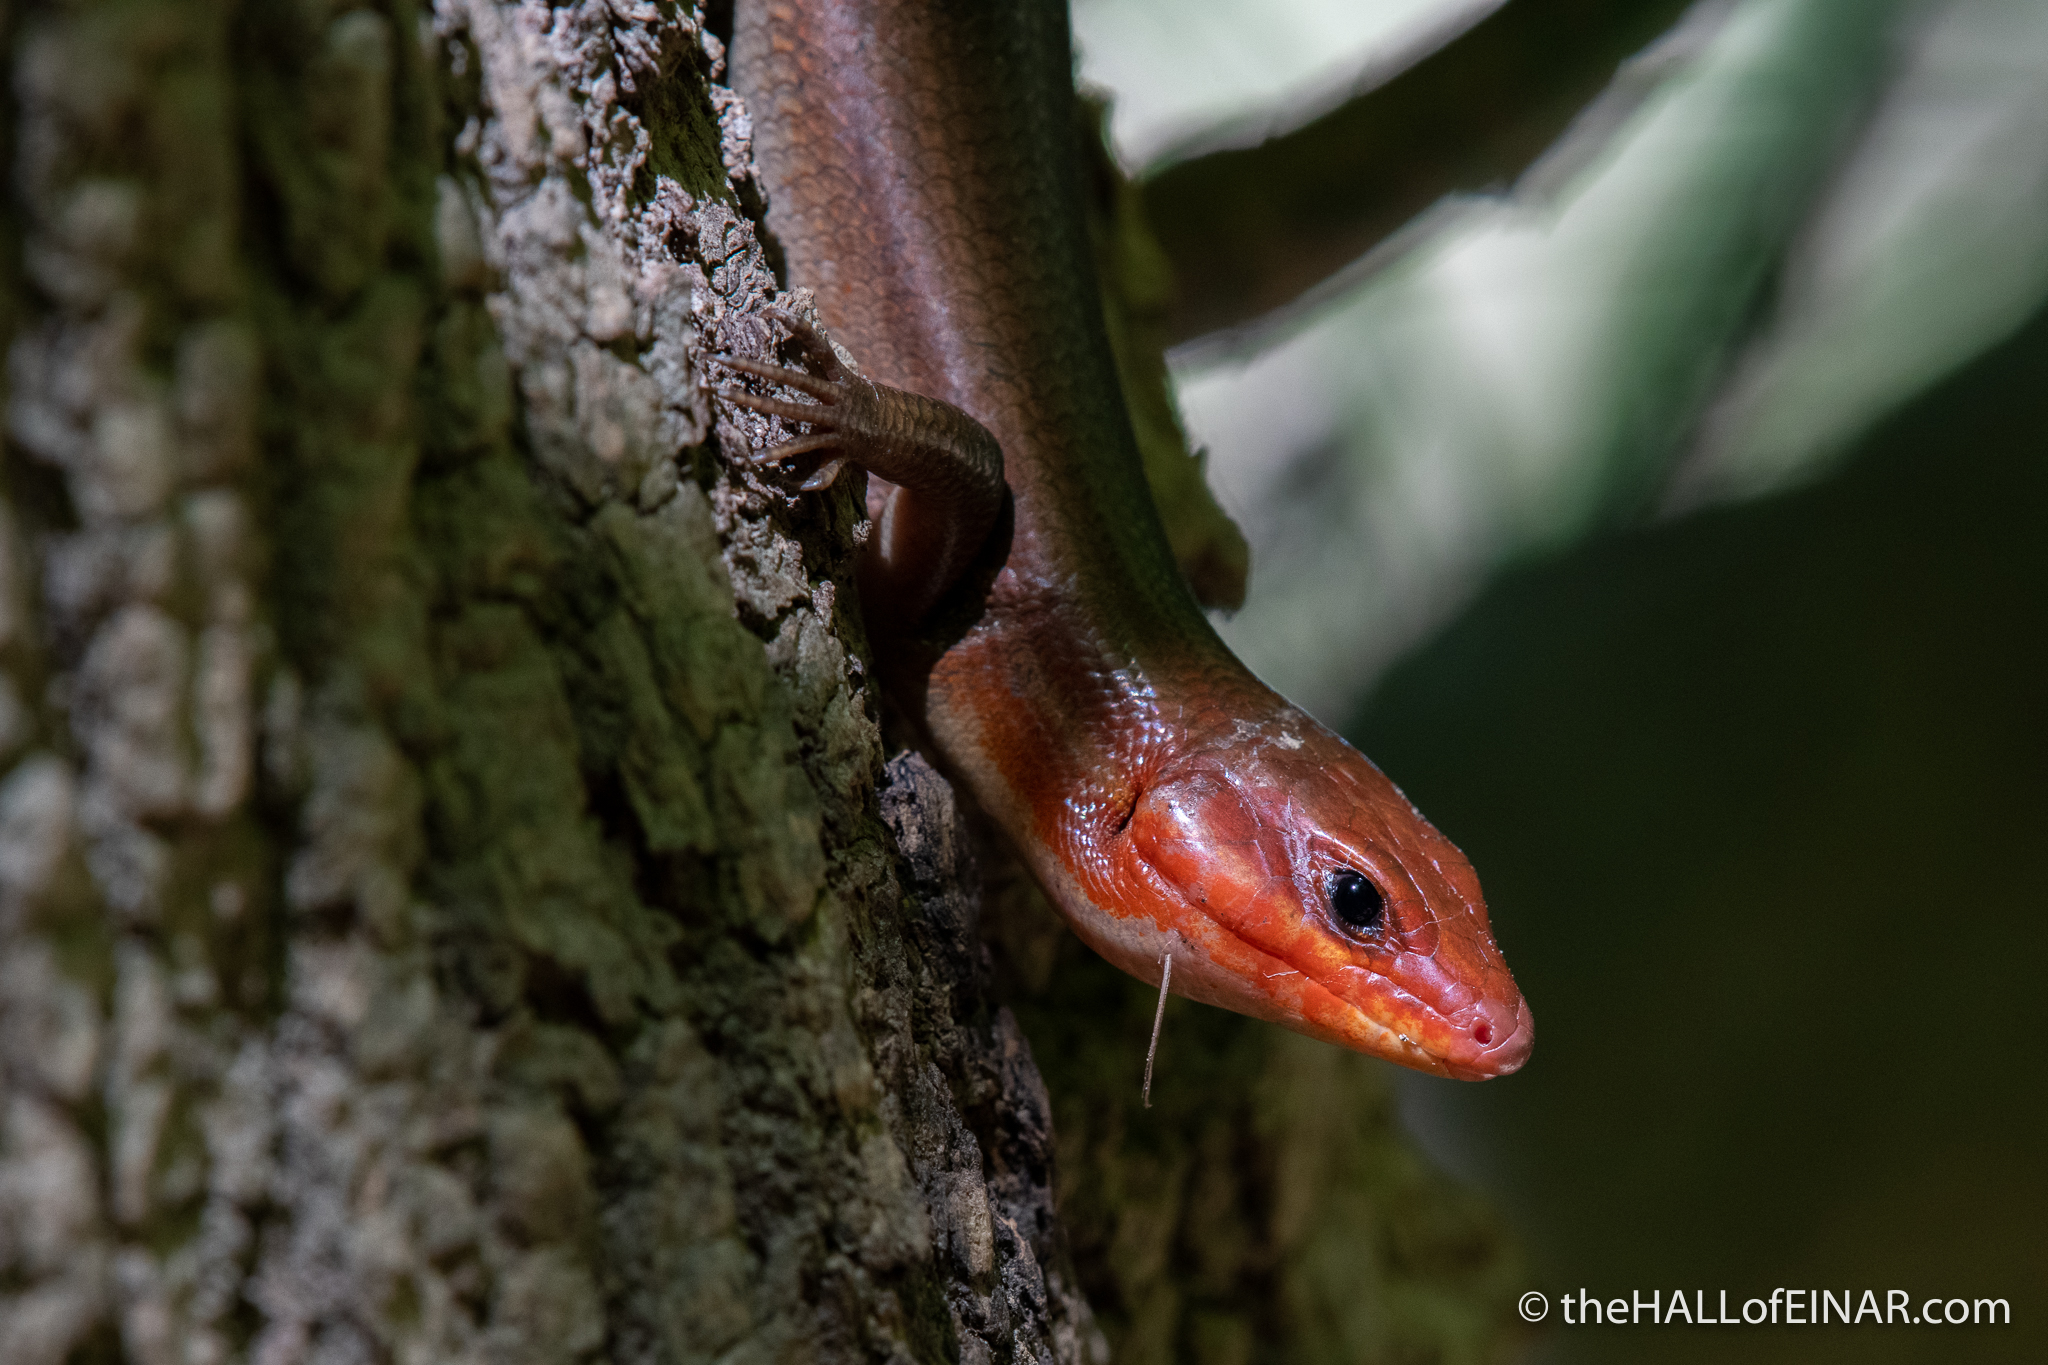 Broad Headed Skink - The Hall of Einar - photograph (c) David Bailey (not the)